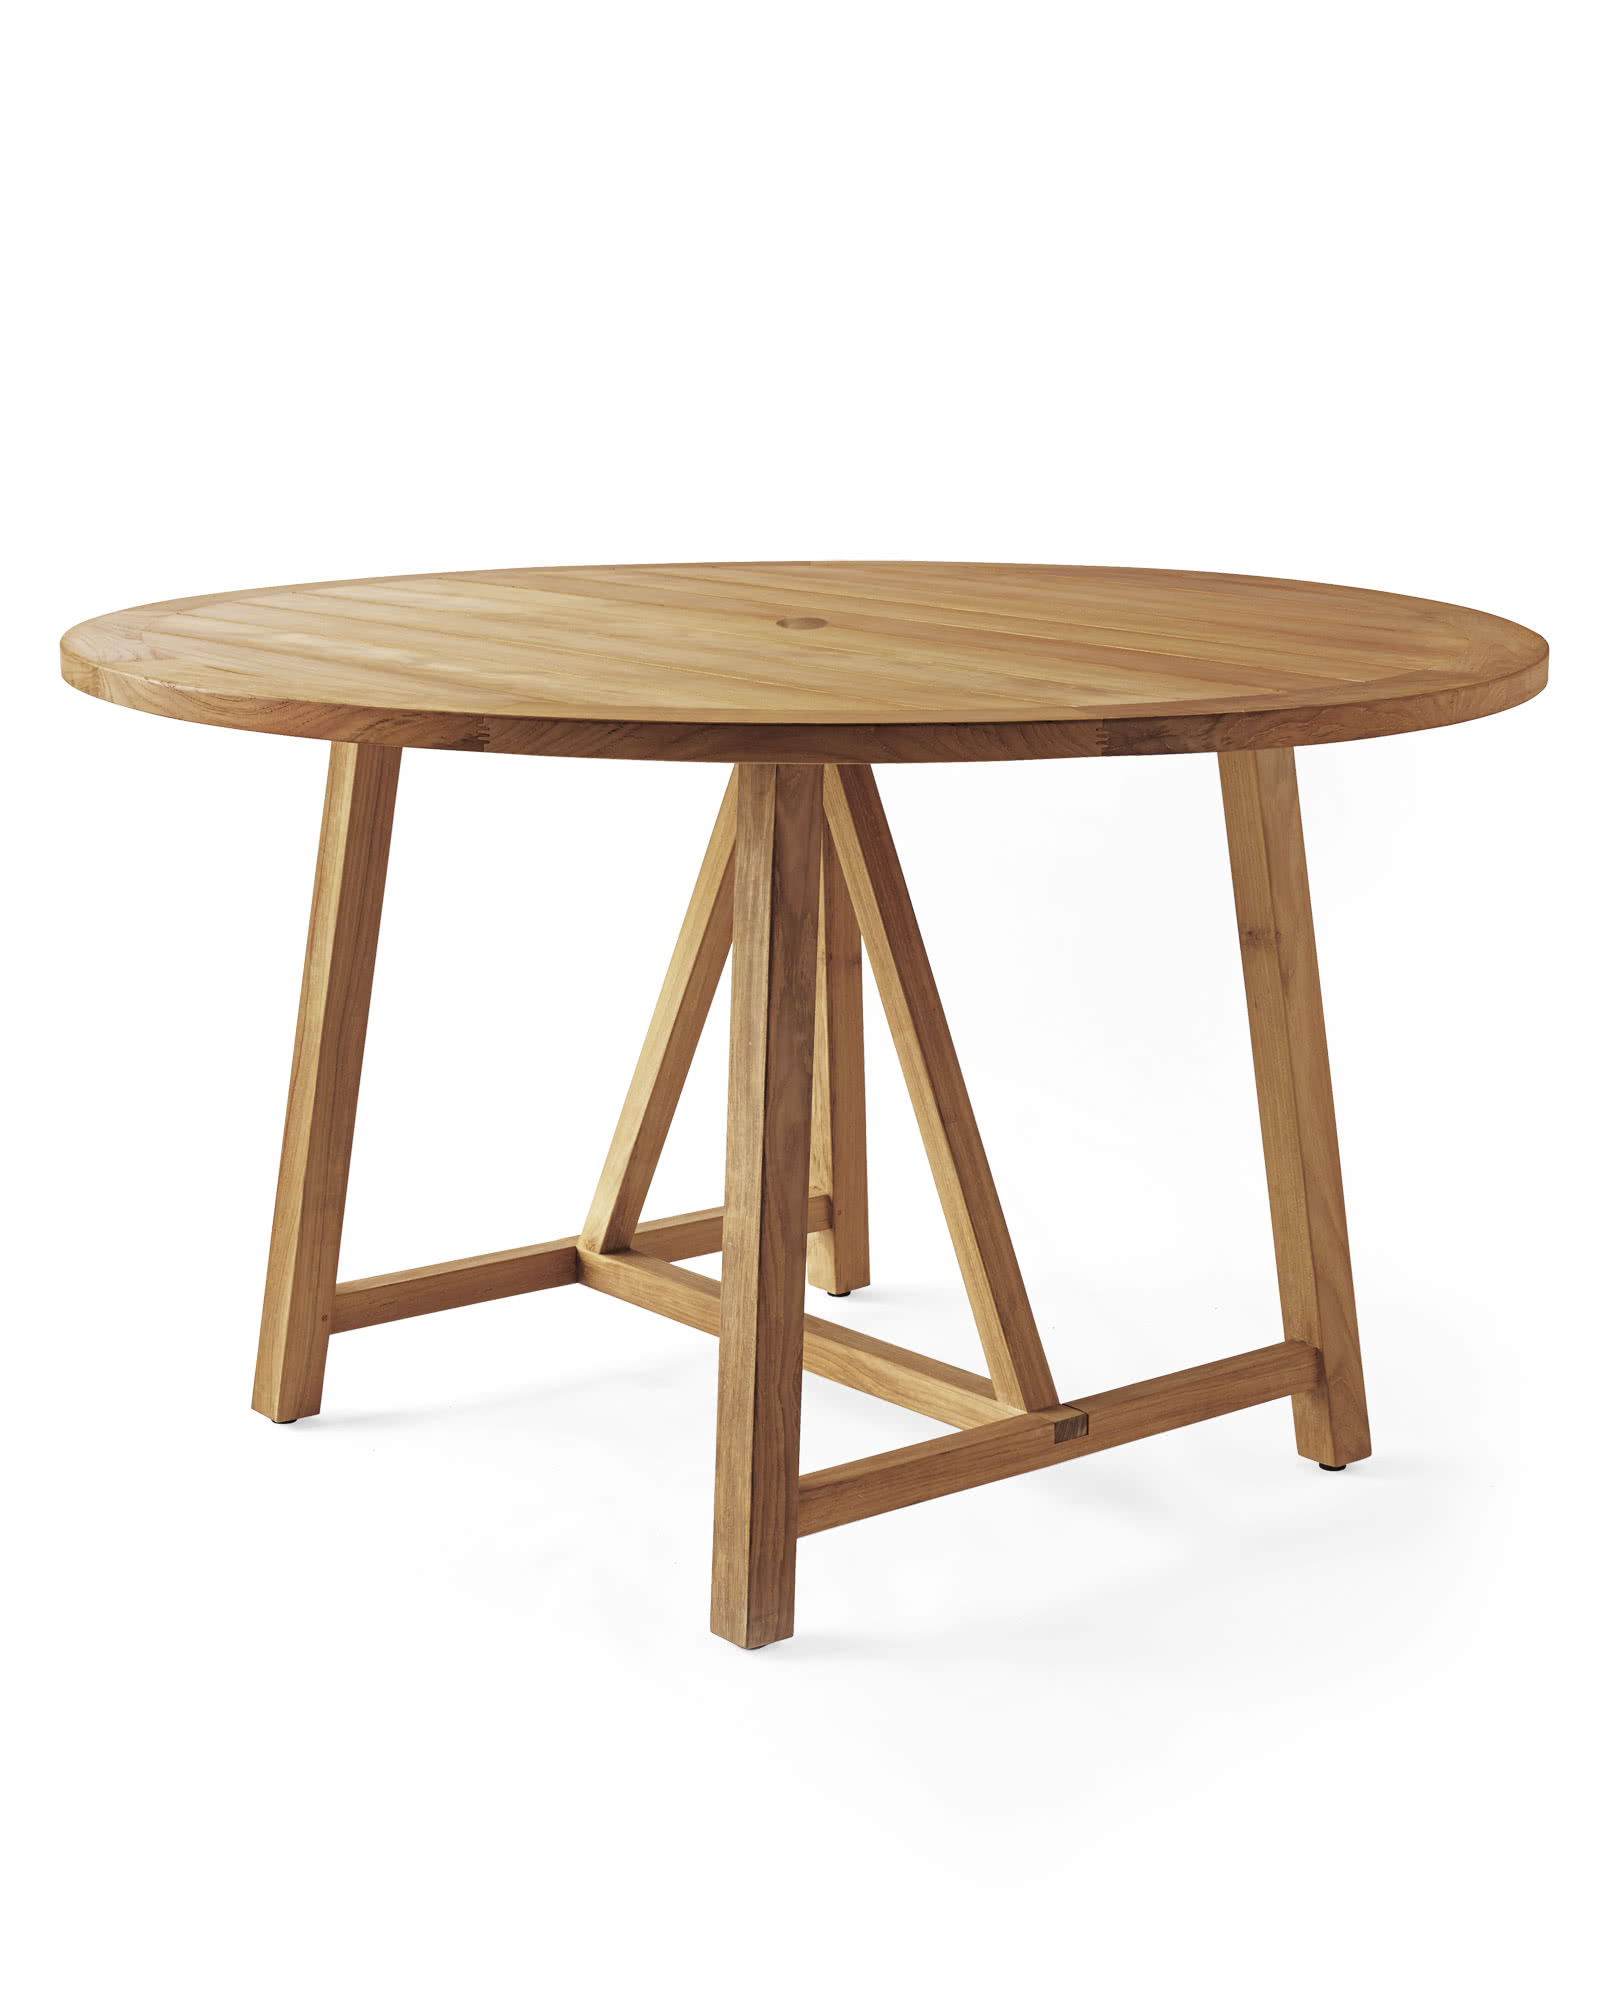 Crosby Teak Round Dining Table